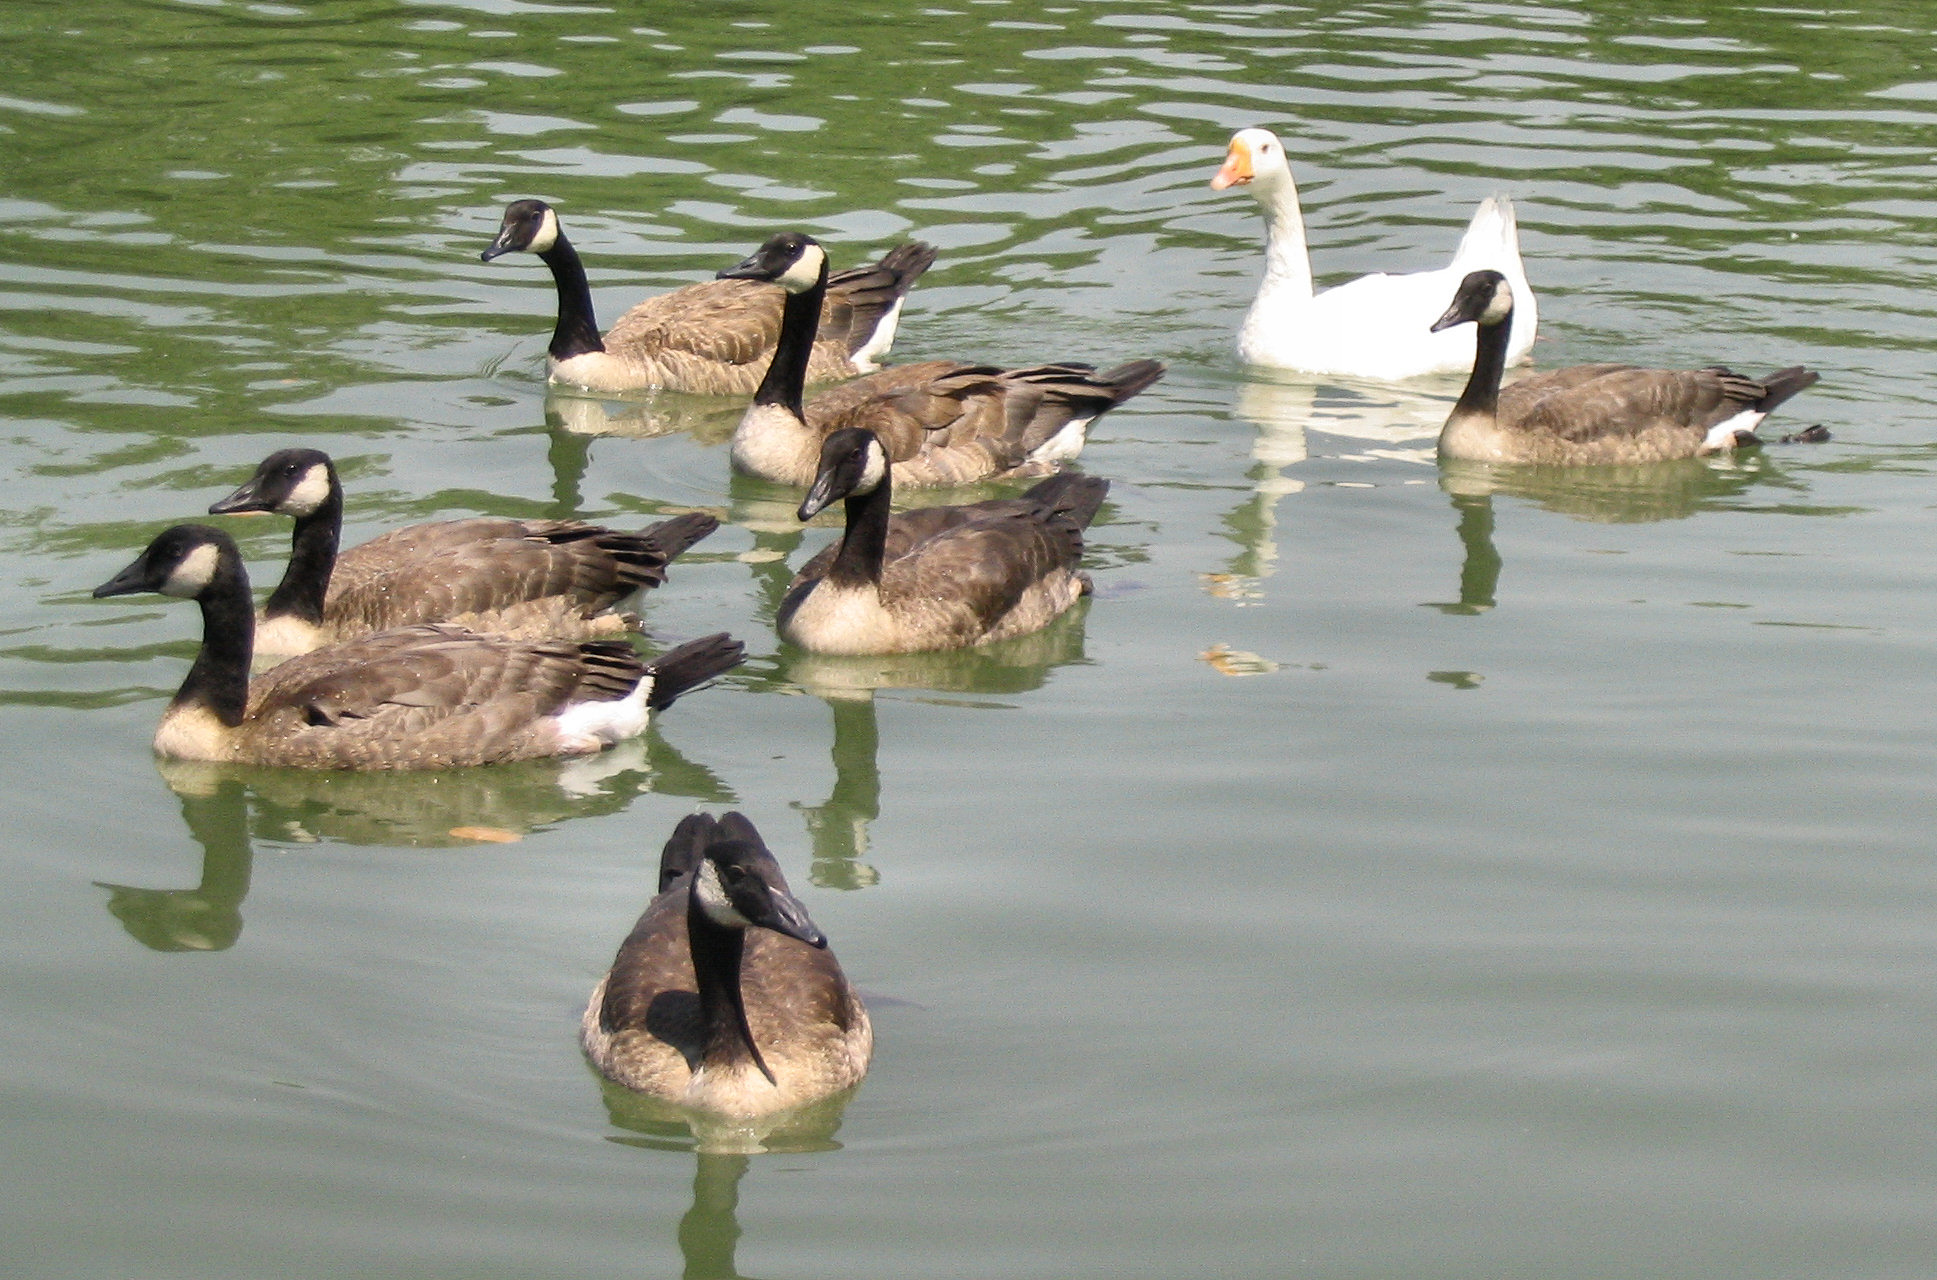 English: A group of Canada geese along with a ...